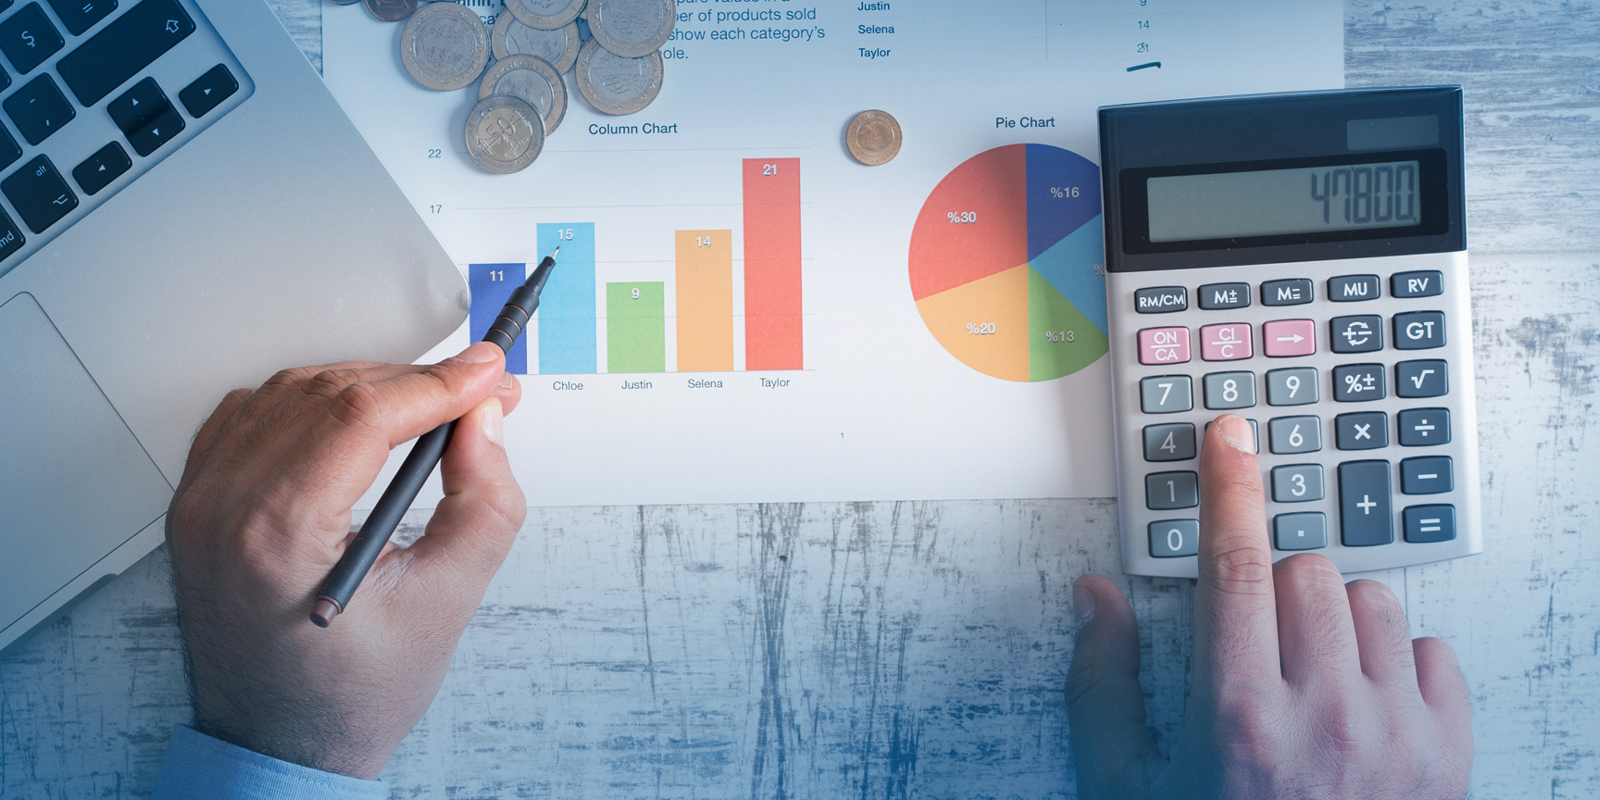 New IFRS and U.S. GAAP Lease Accounting Rules Impact M&A Transactions | Insights | Jones Day